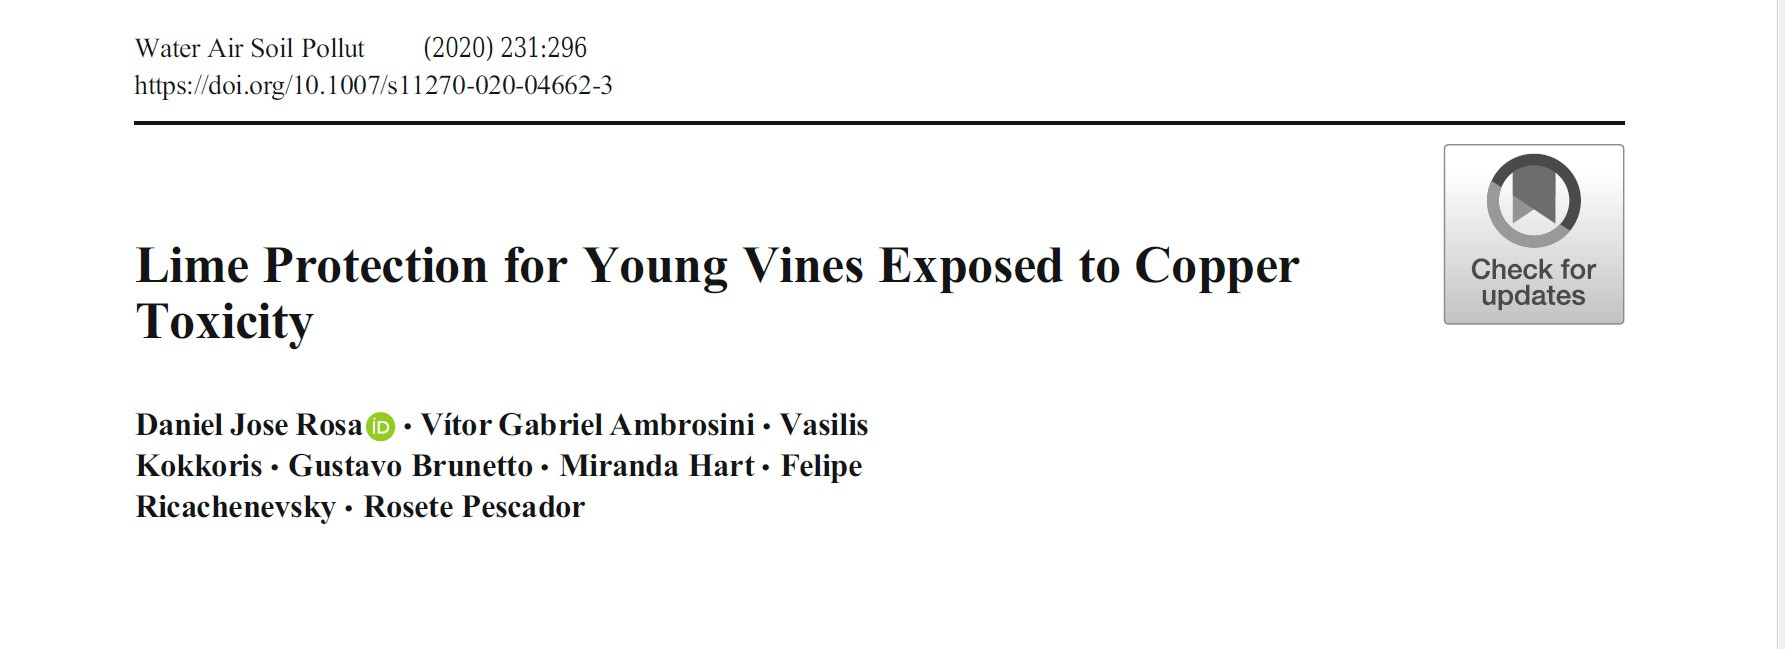 Lime Protection for Young Vines Exposed to Copper Toxicity